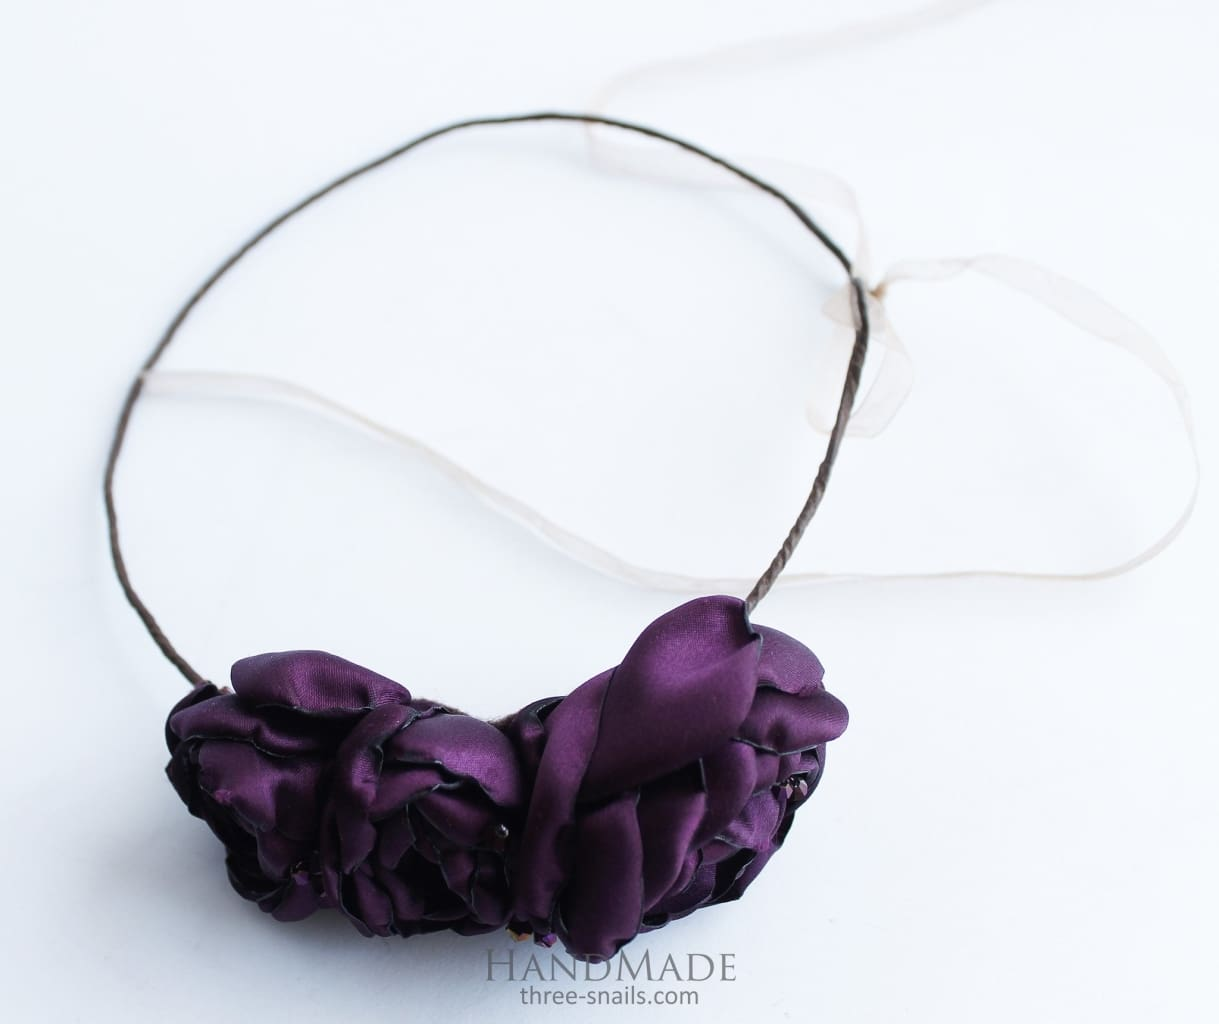 Flower Headband Purple Roses - Vasylchenko1